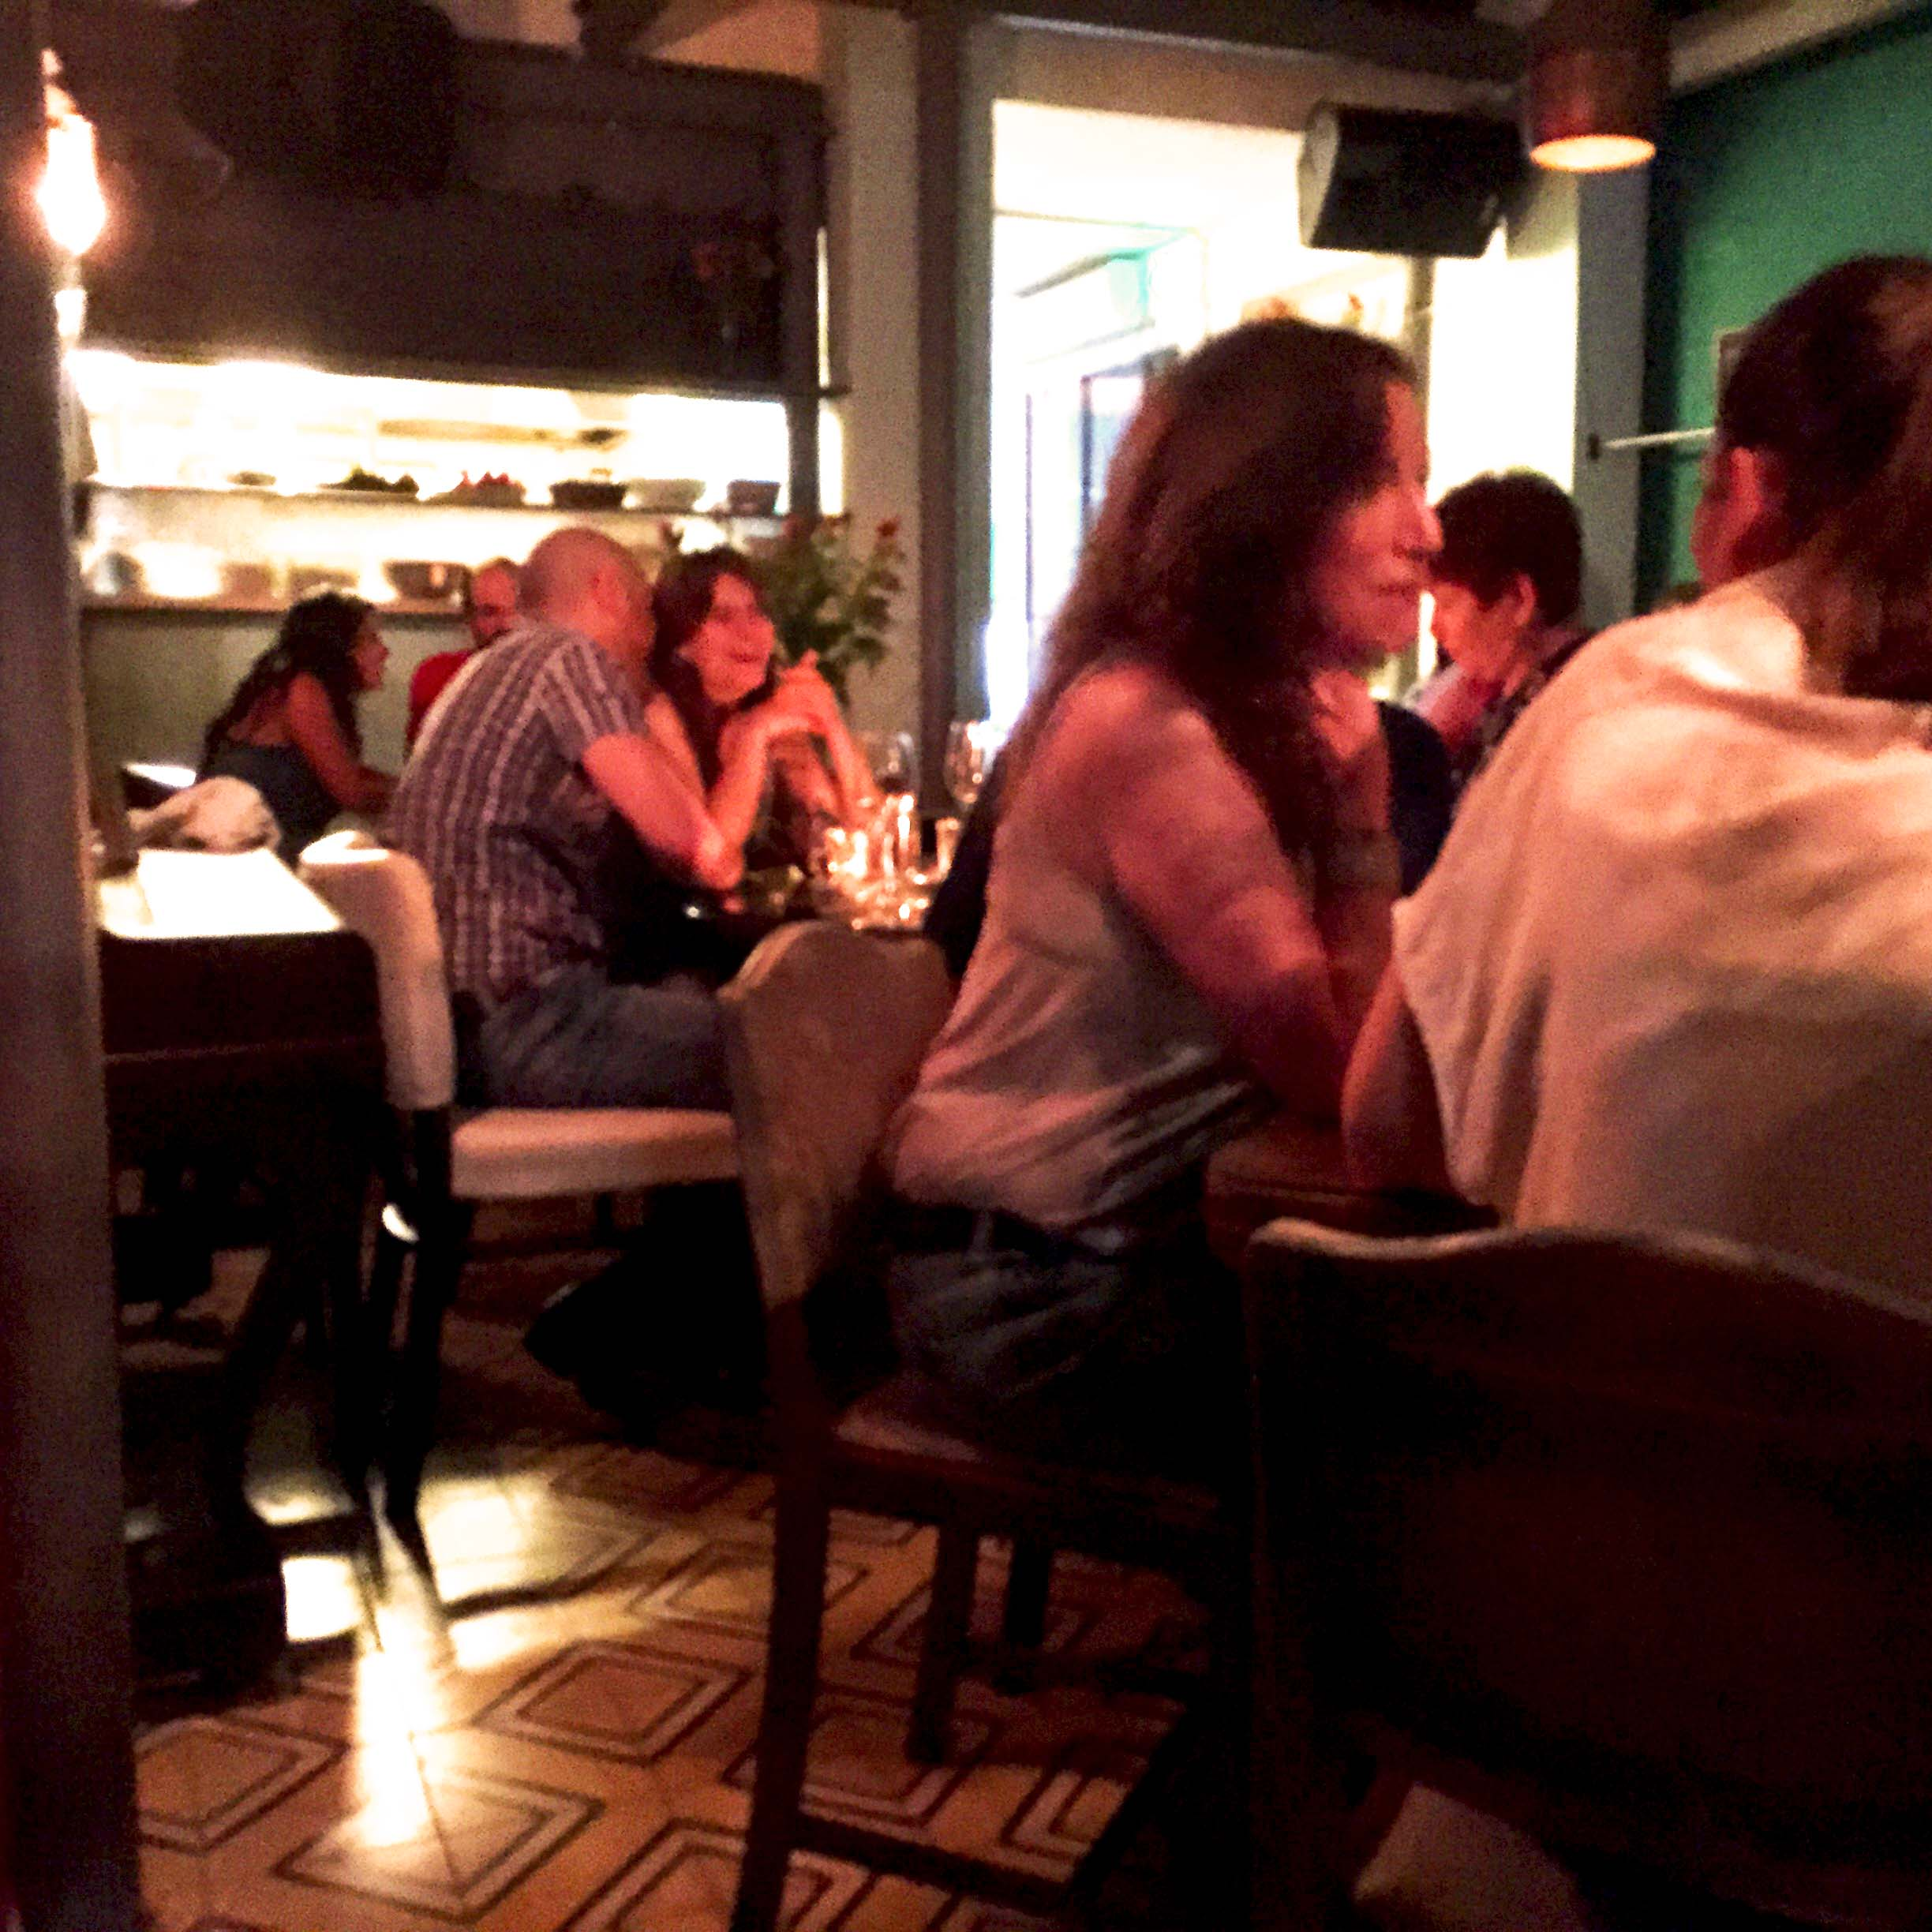 Diners enjoy a balmy Tel Aviv evening over good food and conversation at Joz ve Los in Tel Aviv, Israel. (Photo: Super G)